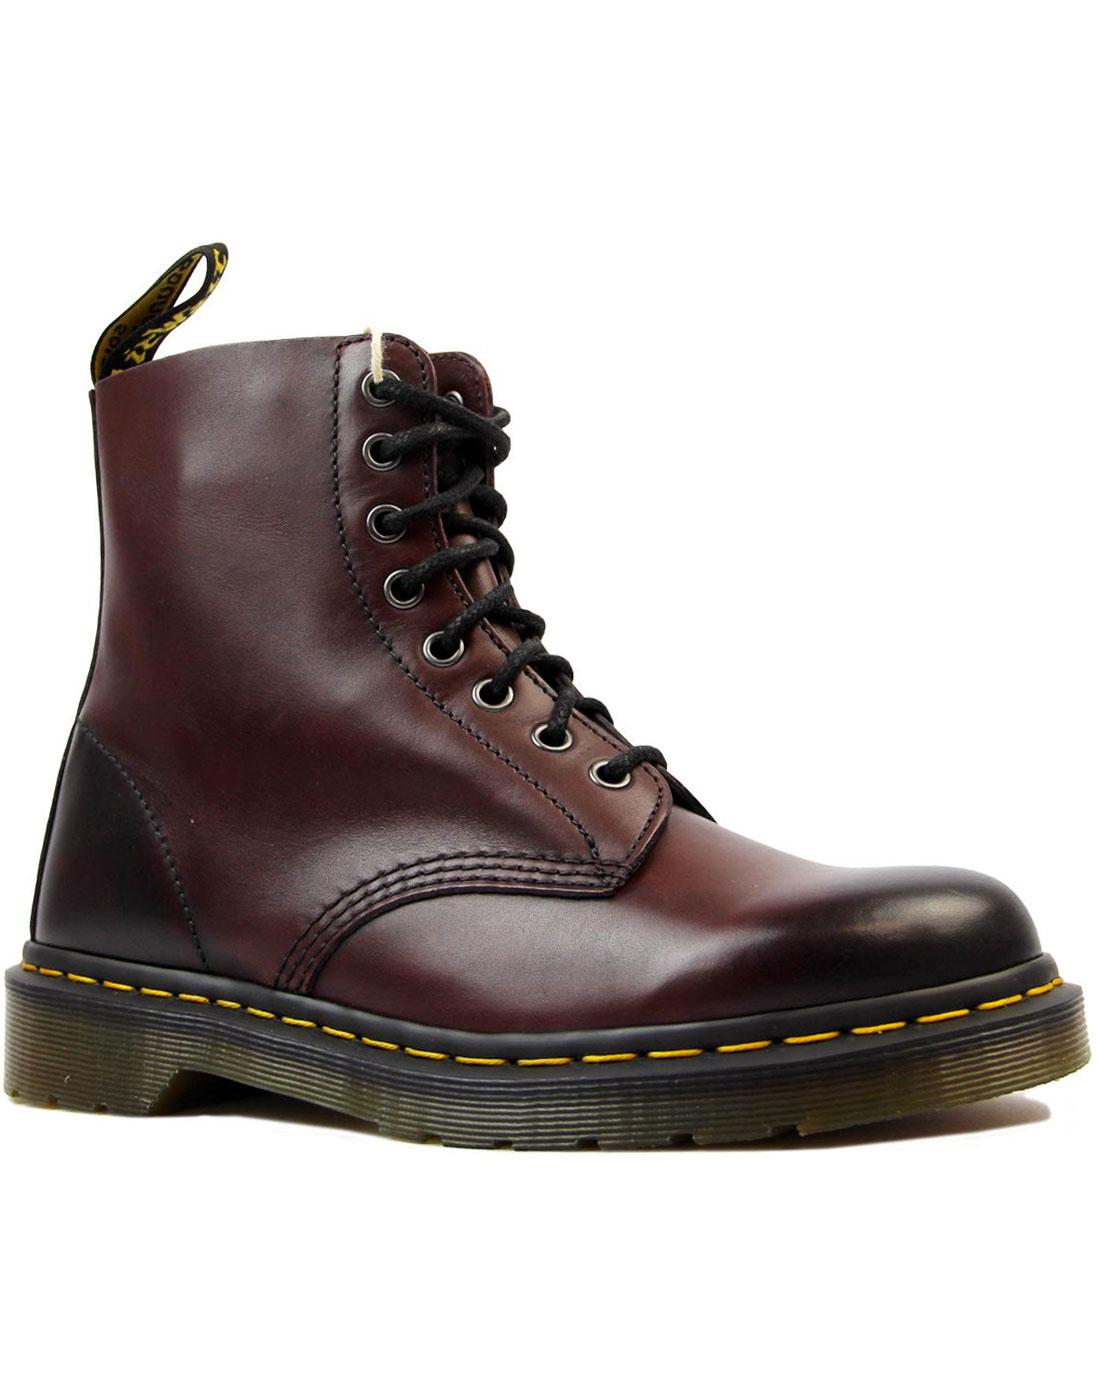 Pascal DR MARTENS Antique Temperley Boots (CHERRY)